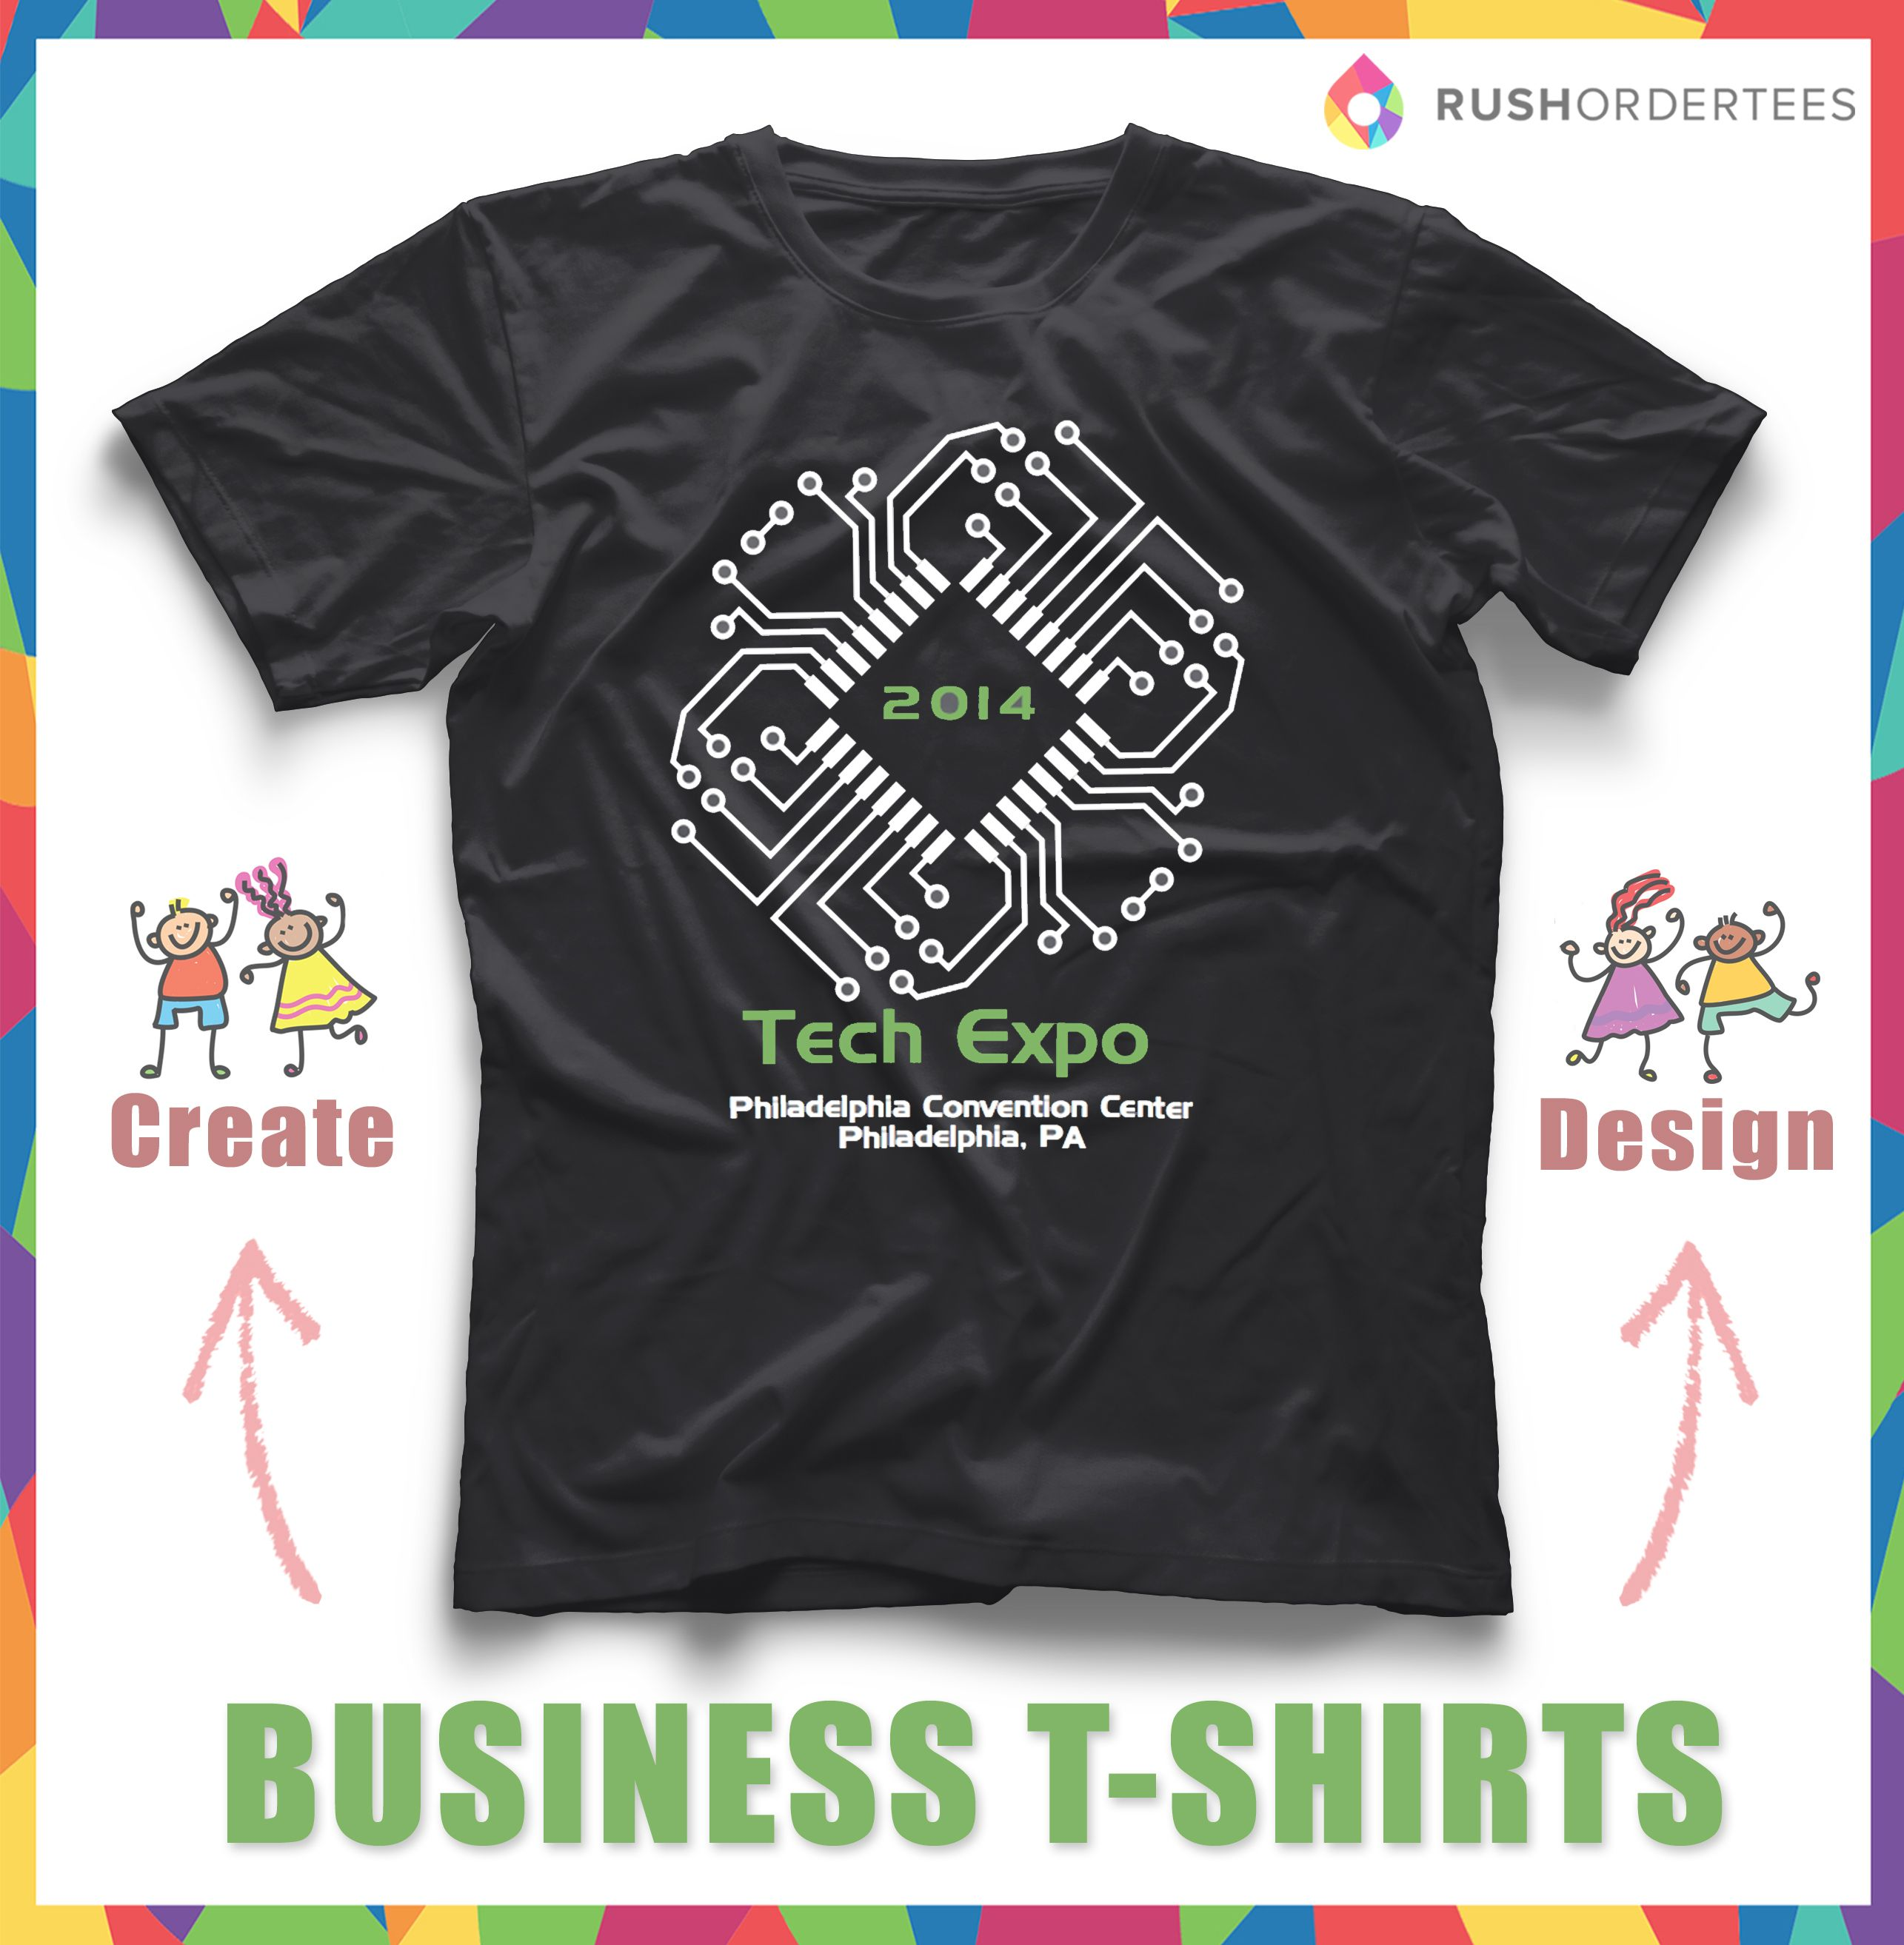 67ffa3117107 Business custom T-Shirt Ideas! Create your custom business t-shirt for your  next event. RushOrderTees.com